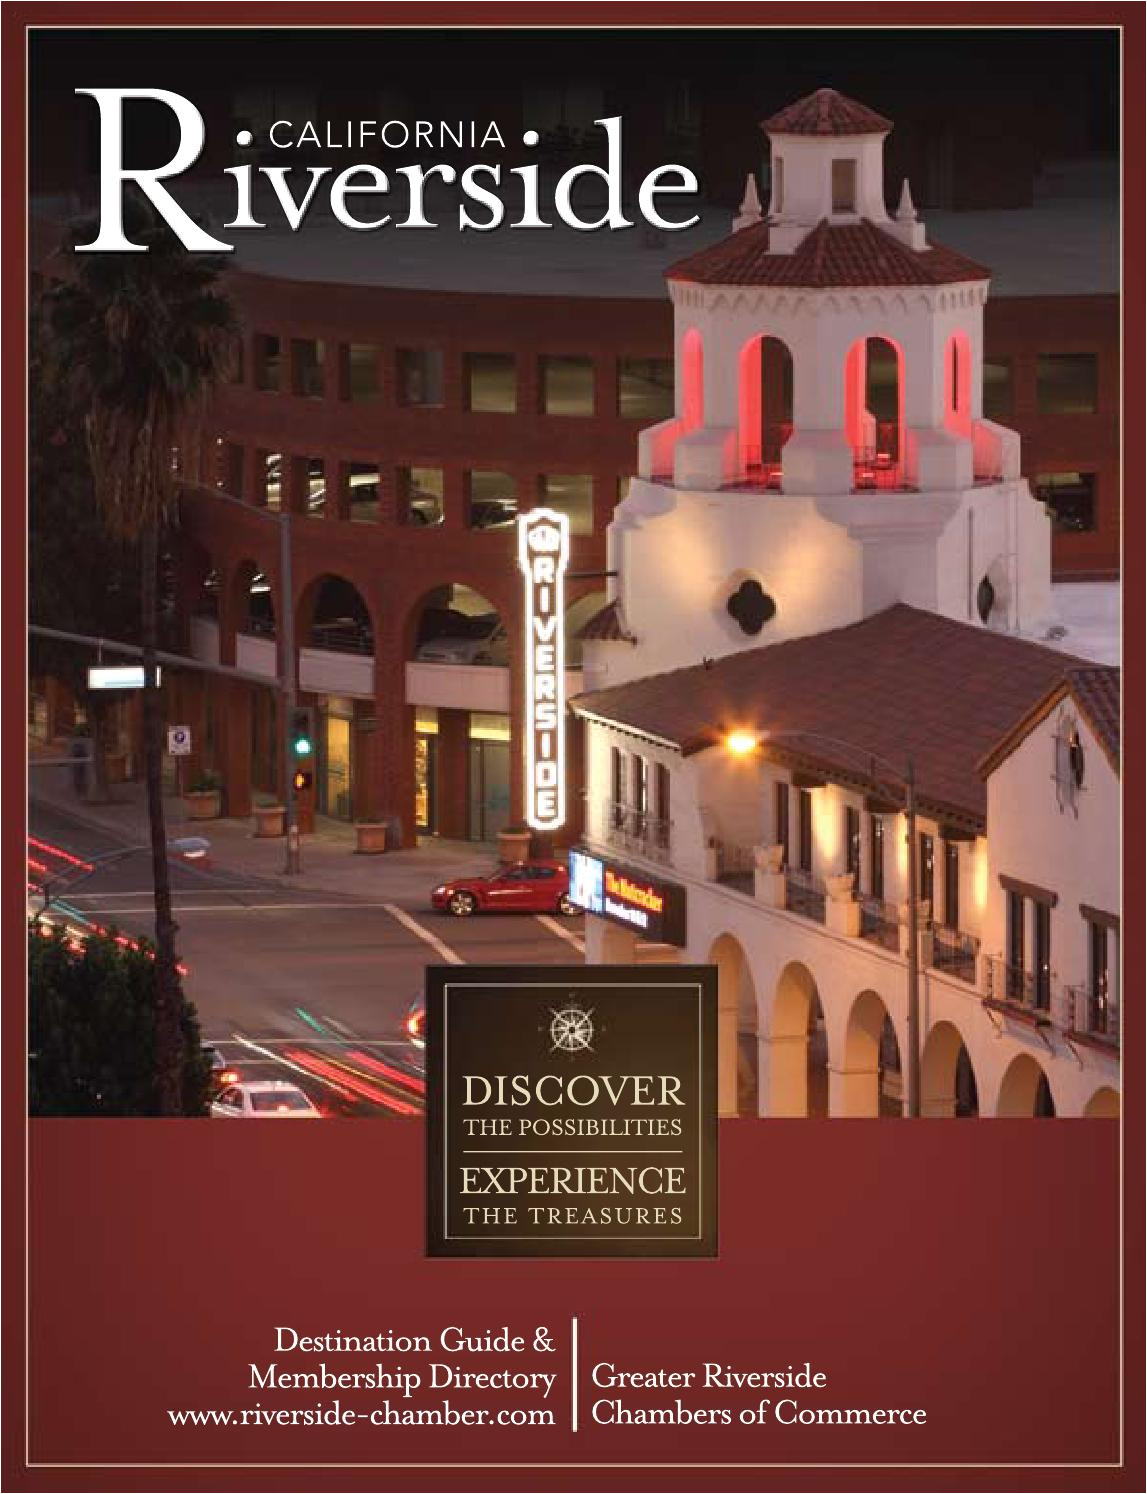 riverside destination guide business directory 2011 2012 by greater riverside chambers of commerce issuu